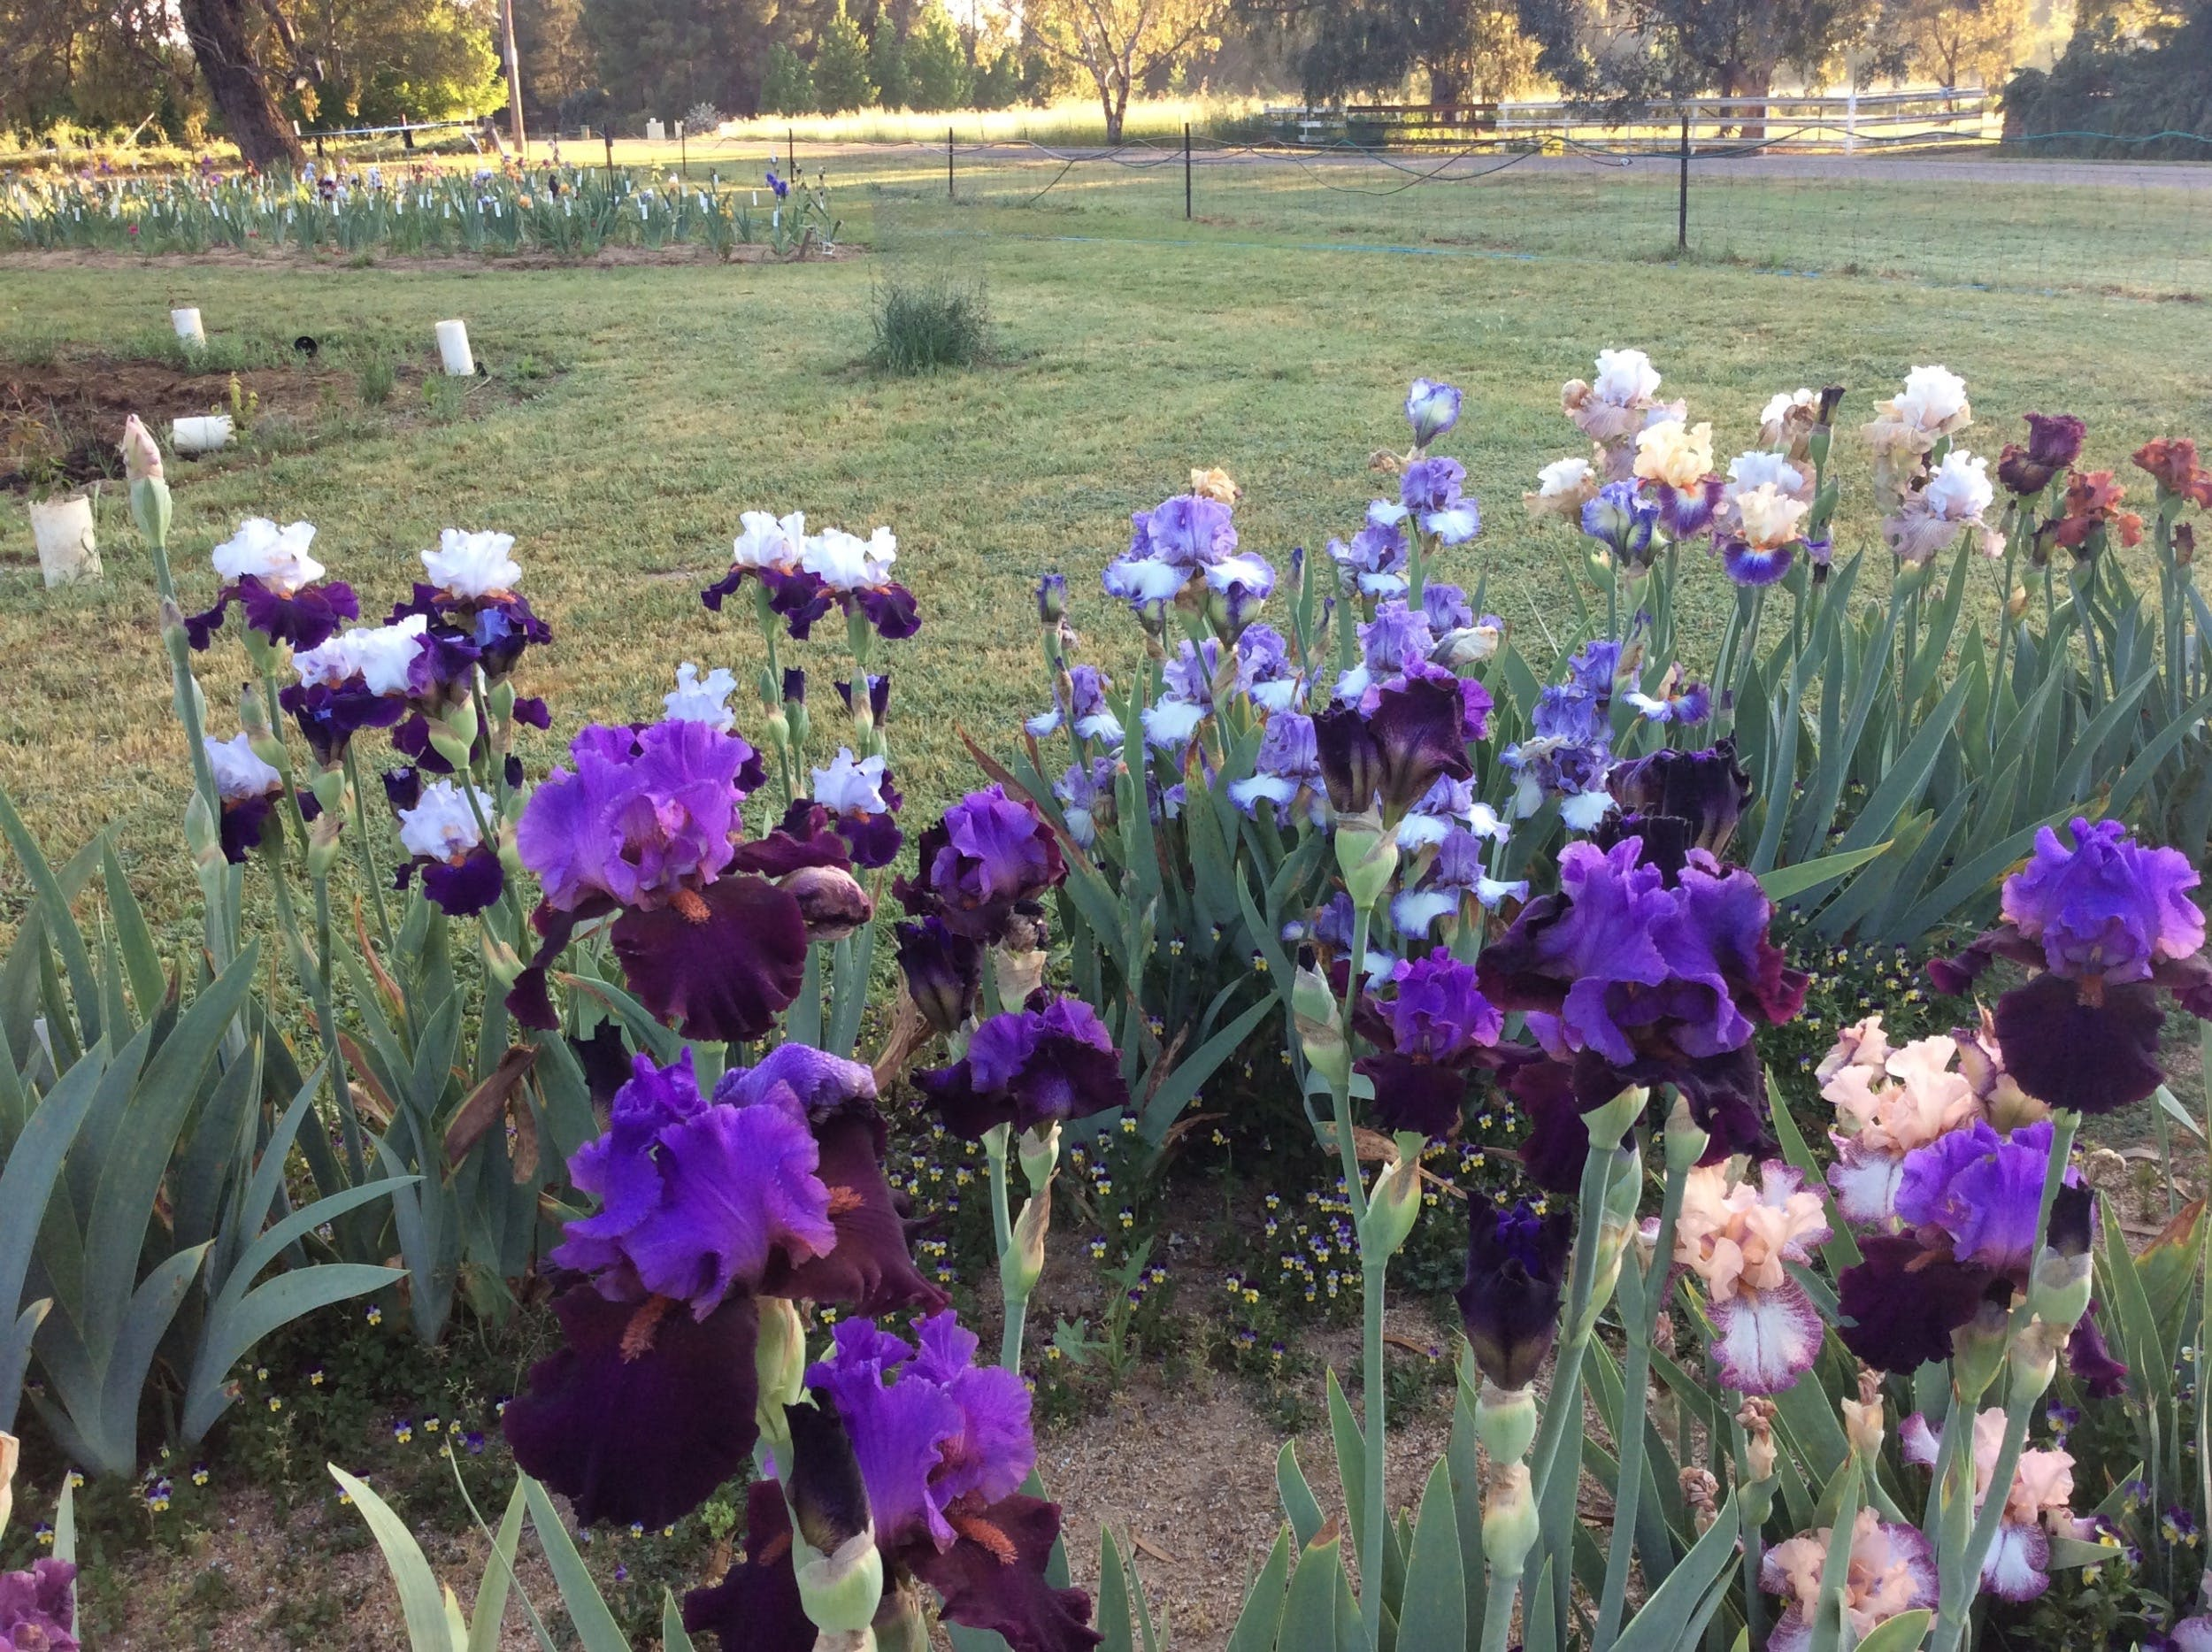 Riverina Iris Farm Open Garden and Iris Display - Accommodation Batemans Bay